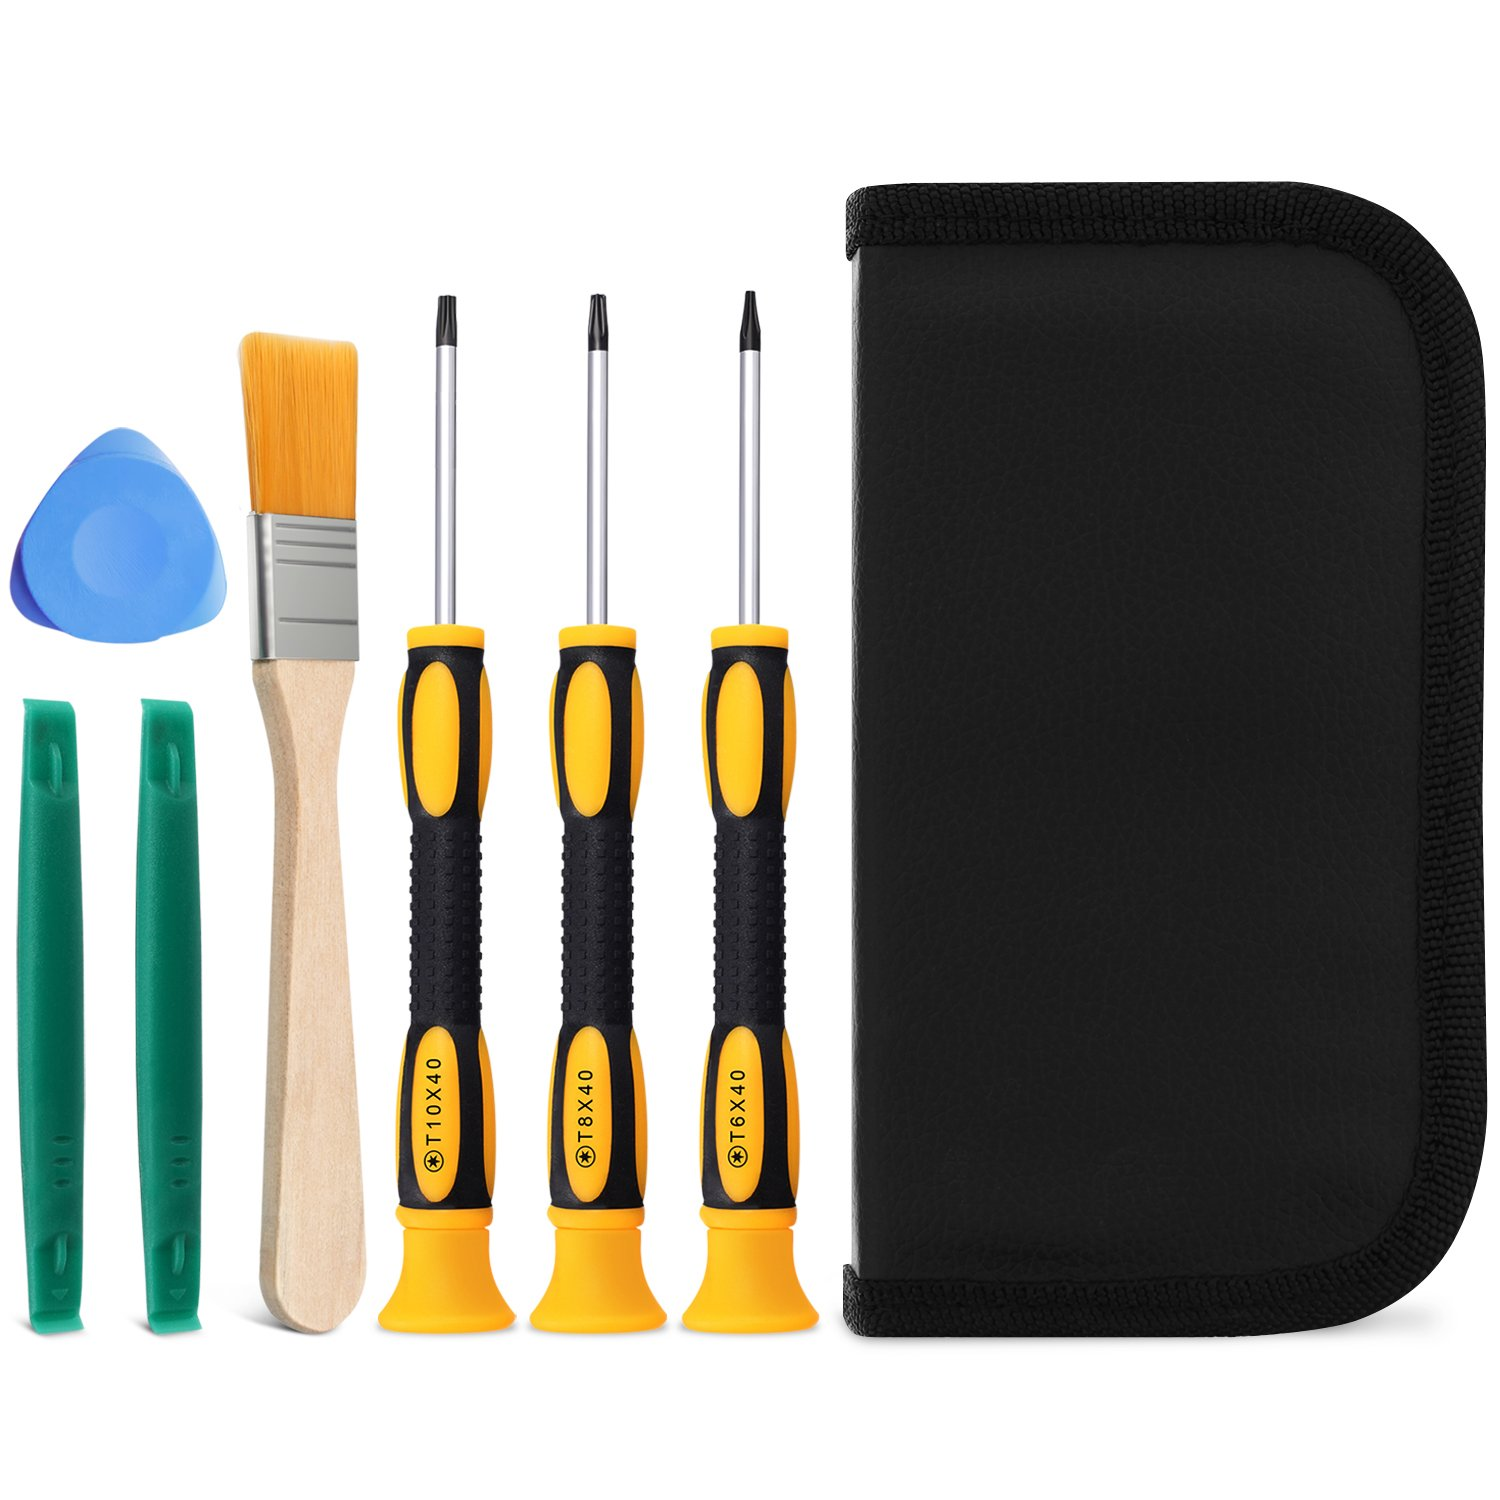 Fosmon Game Controller 7 Pieces Tool Repair Kit, T6 T8 T10 Screwdriver Set for Xbox 360, Xbox One Controller and Console, PS3, and PS4 Console A1727